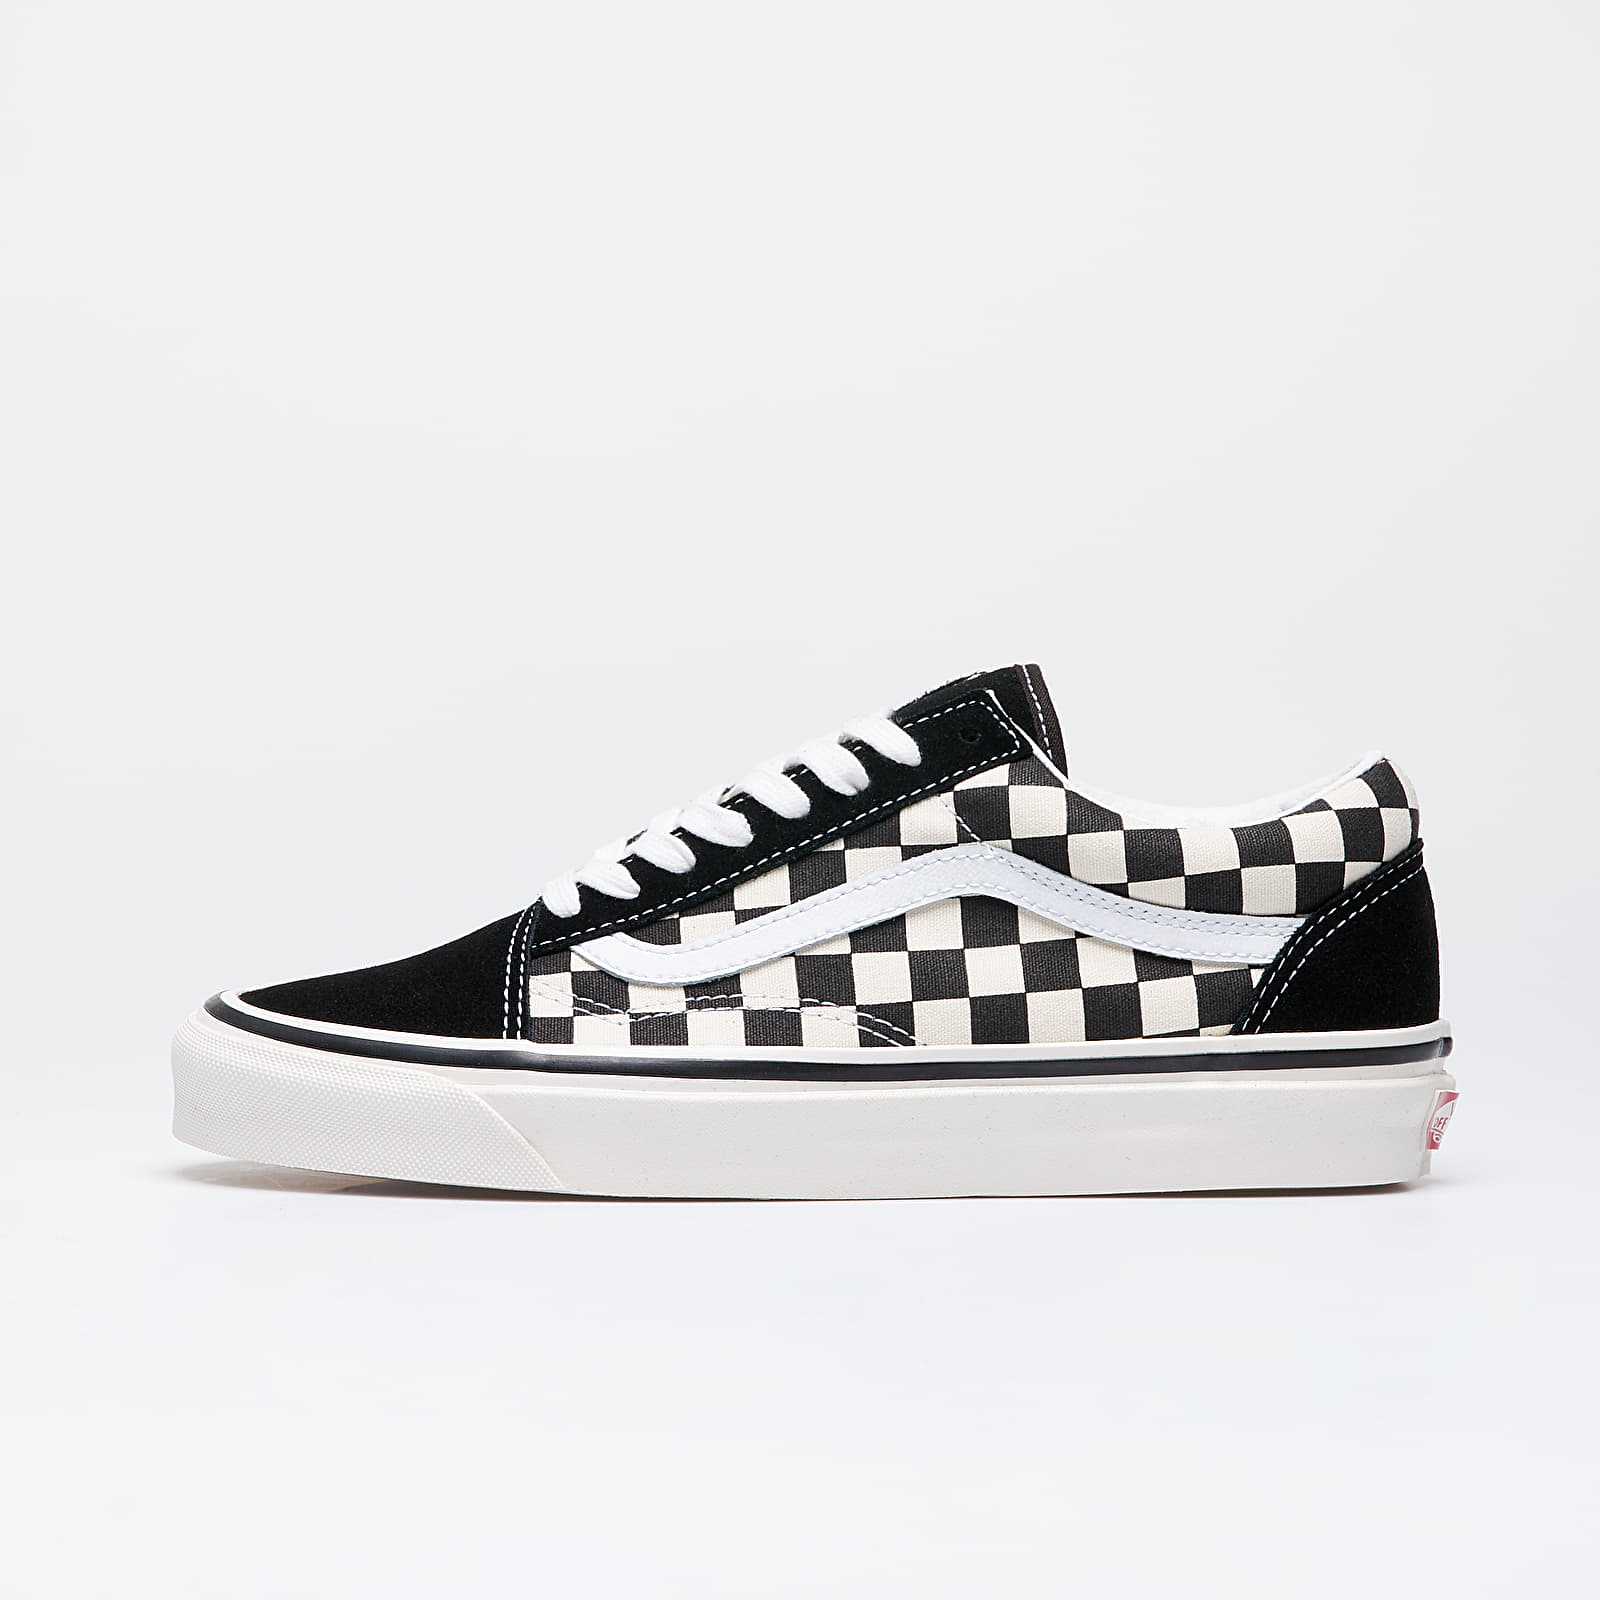 Women's shoes Vans Old Skool 36 DX Black/ Check